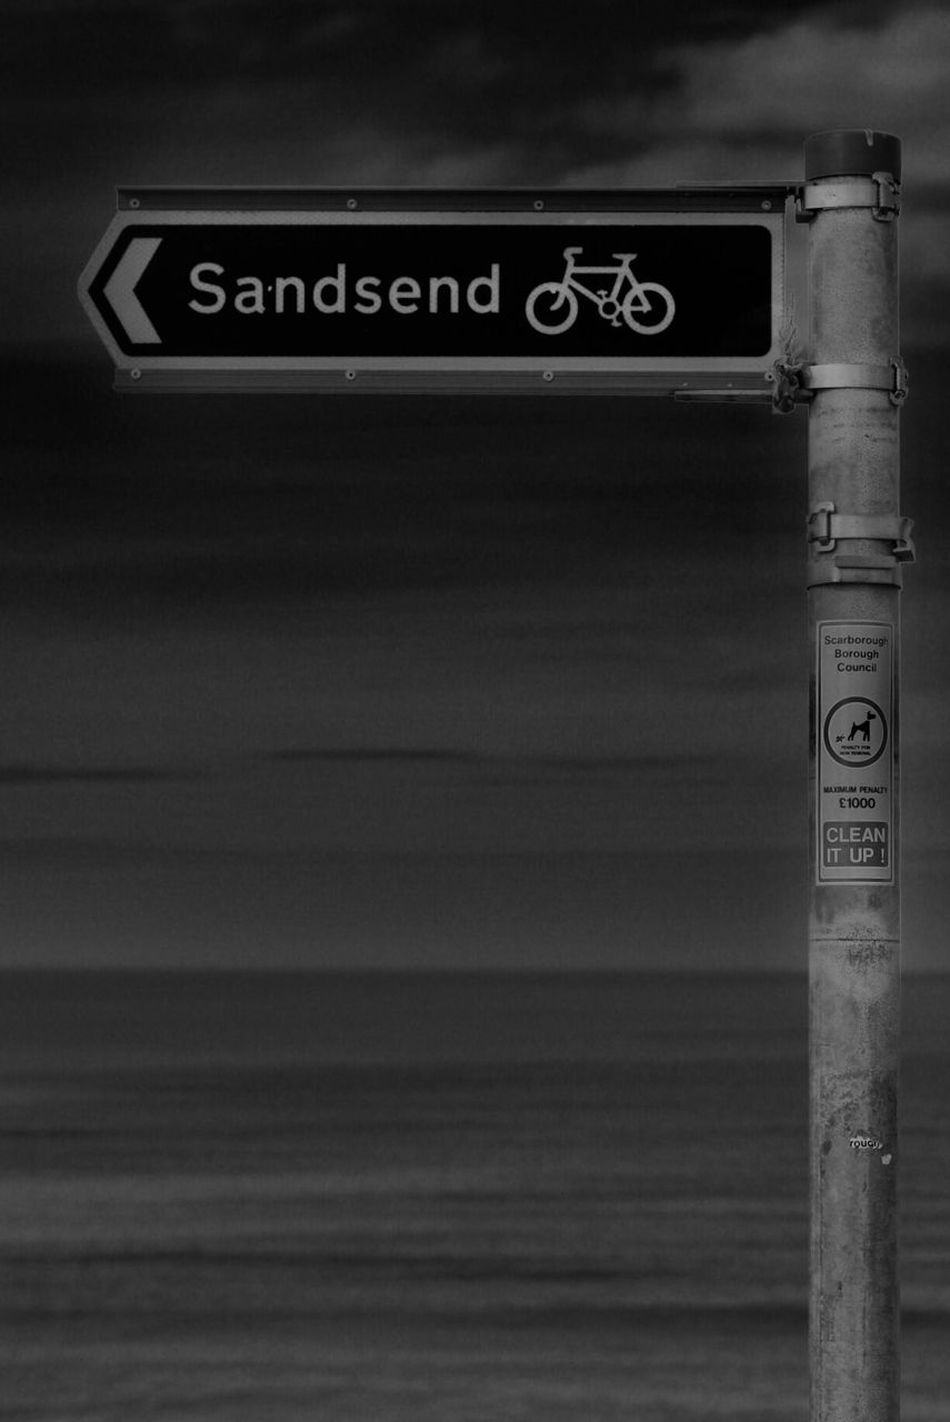 Sandsend Text Western Script Communication Guidance Capital Letter Information No People Warning Sign Safety Warning Road Sign Signboard Day Outdoors Close-up Street Name Sign Outdoor Photography Monochrome Photography Art Is Everywhere Landscape Built Structure